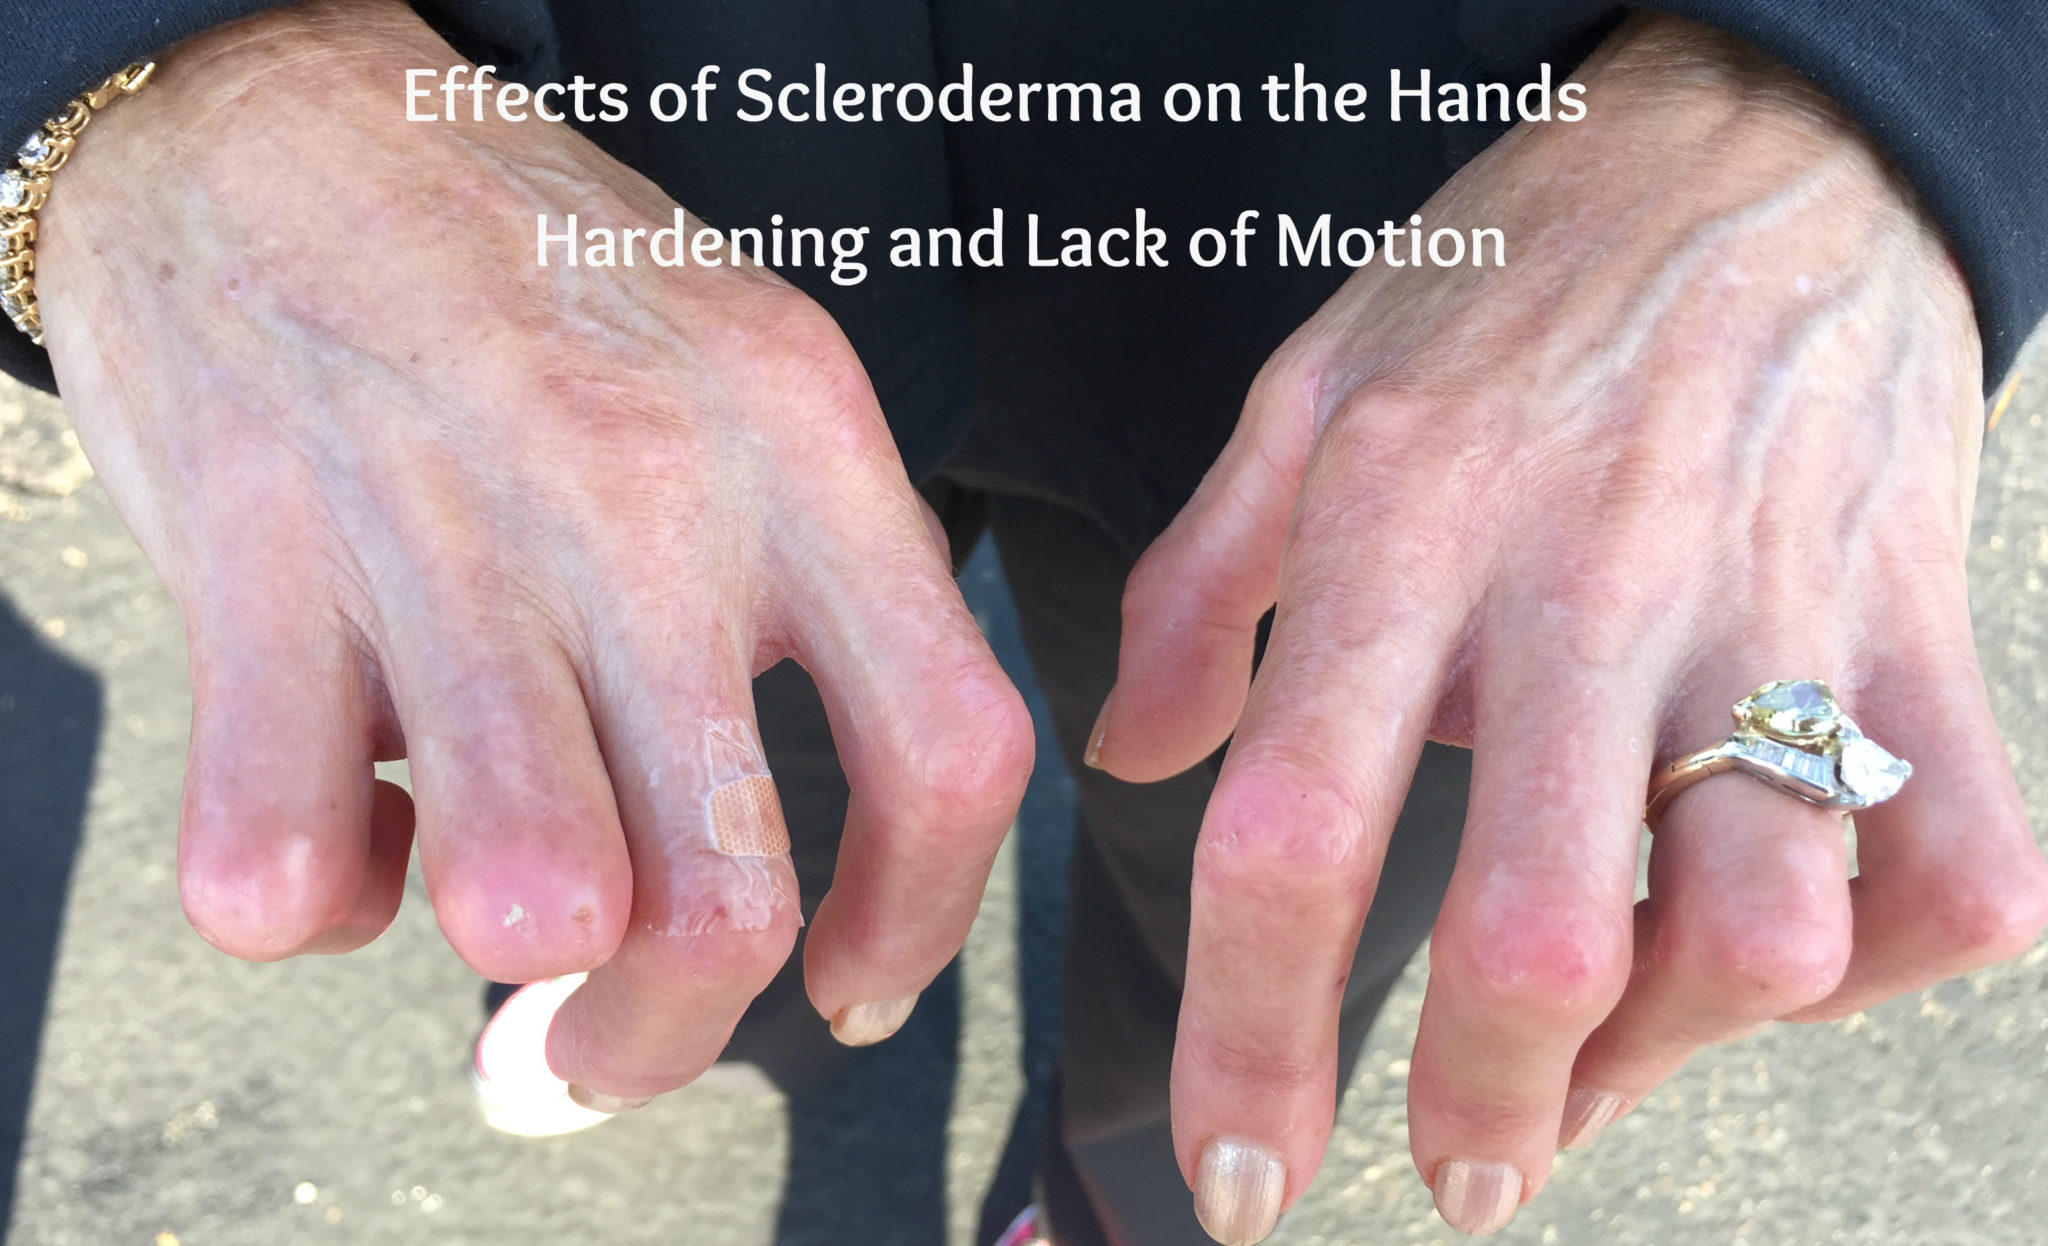 Pledge to Share About Scleroderma